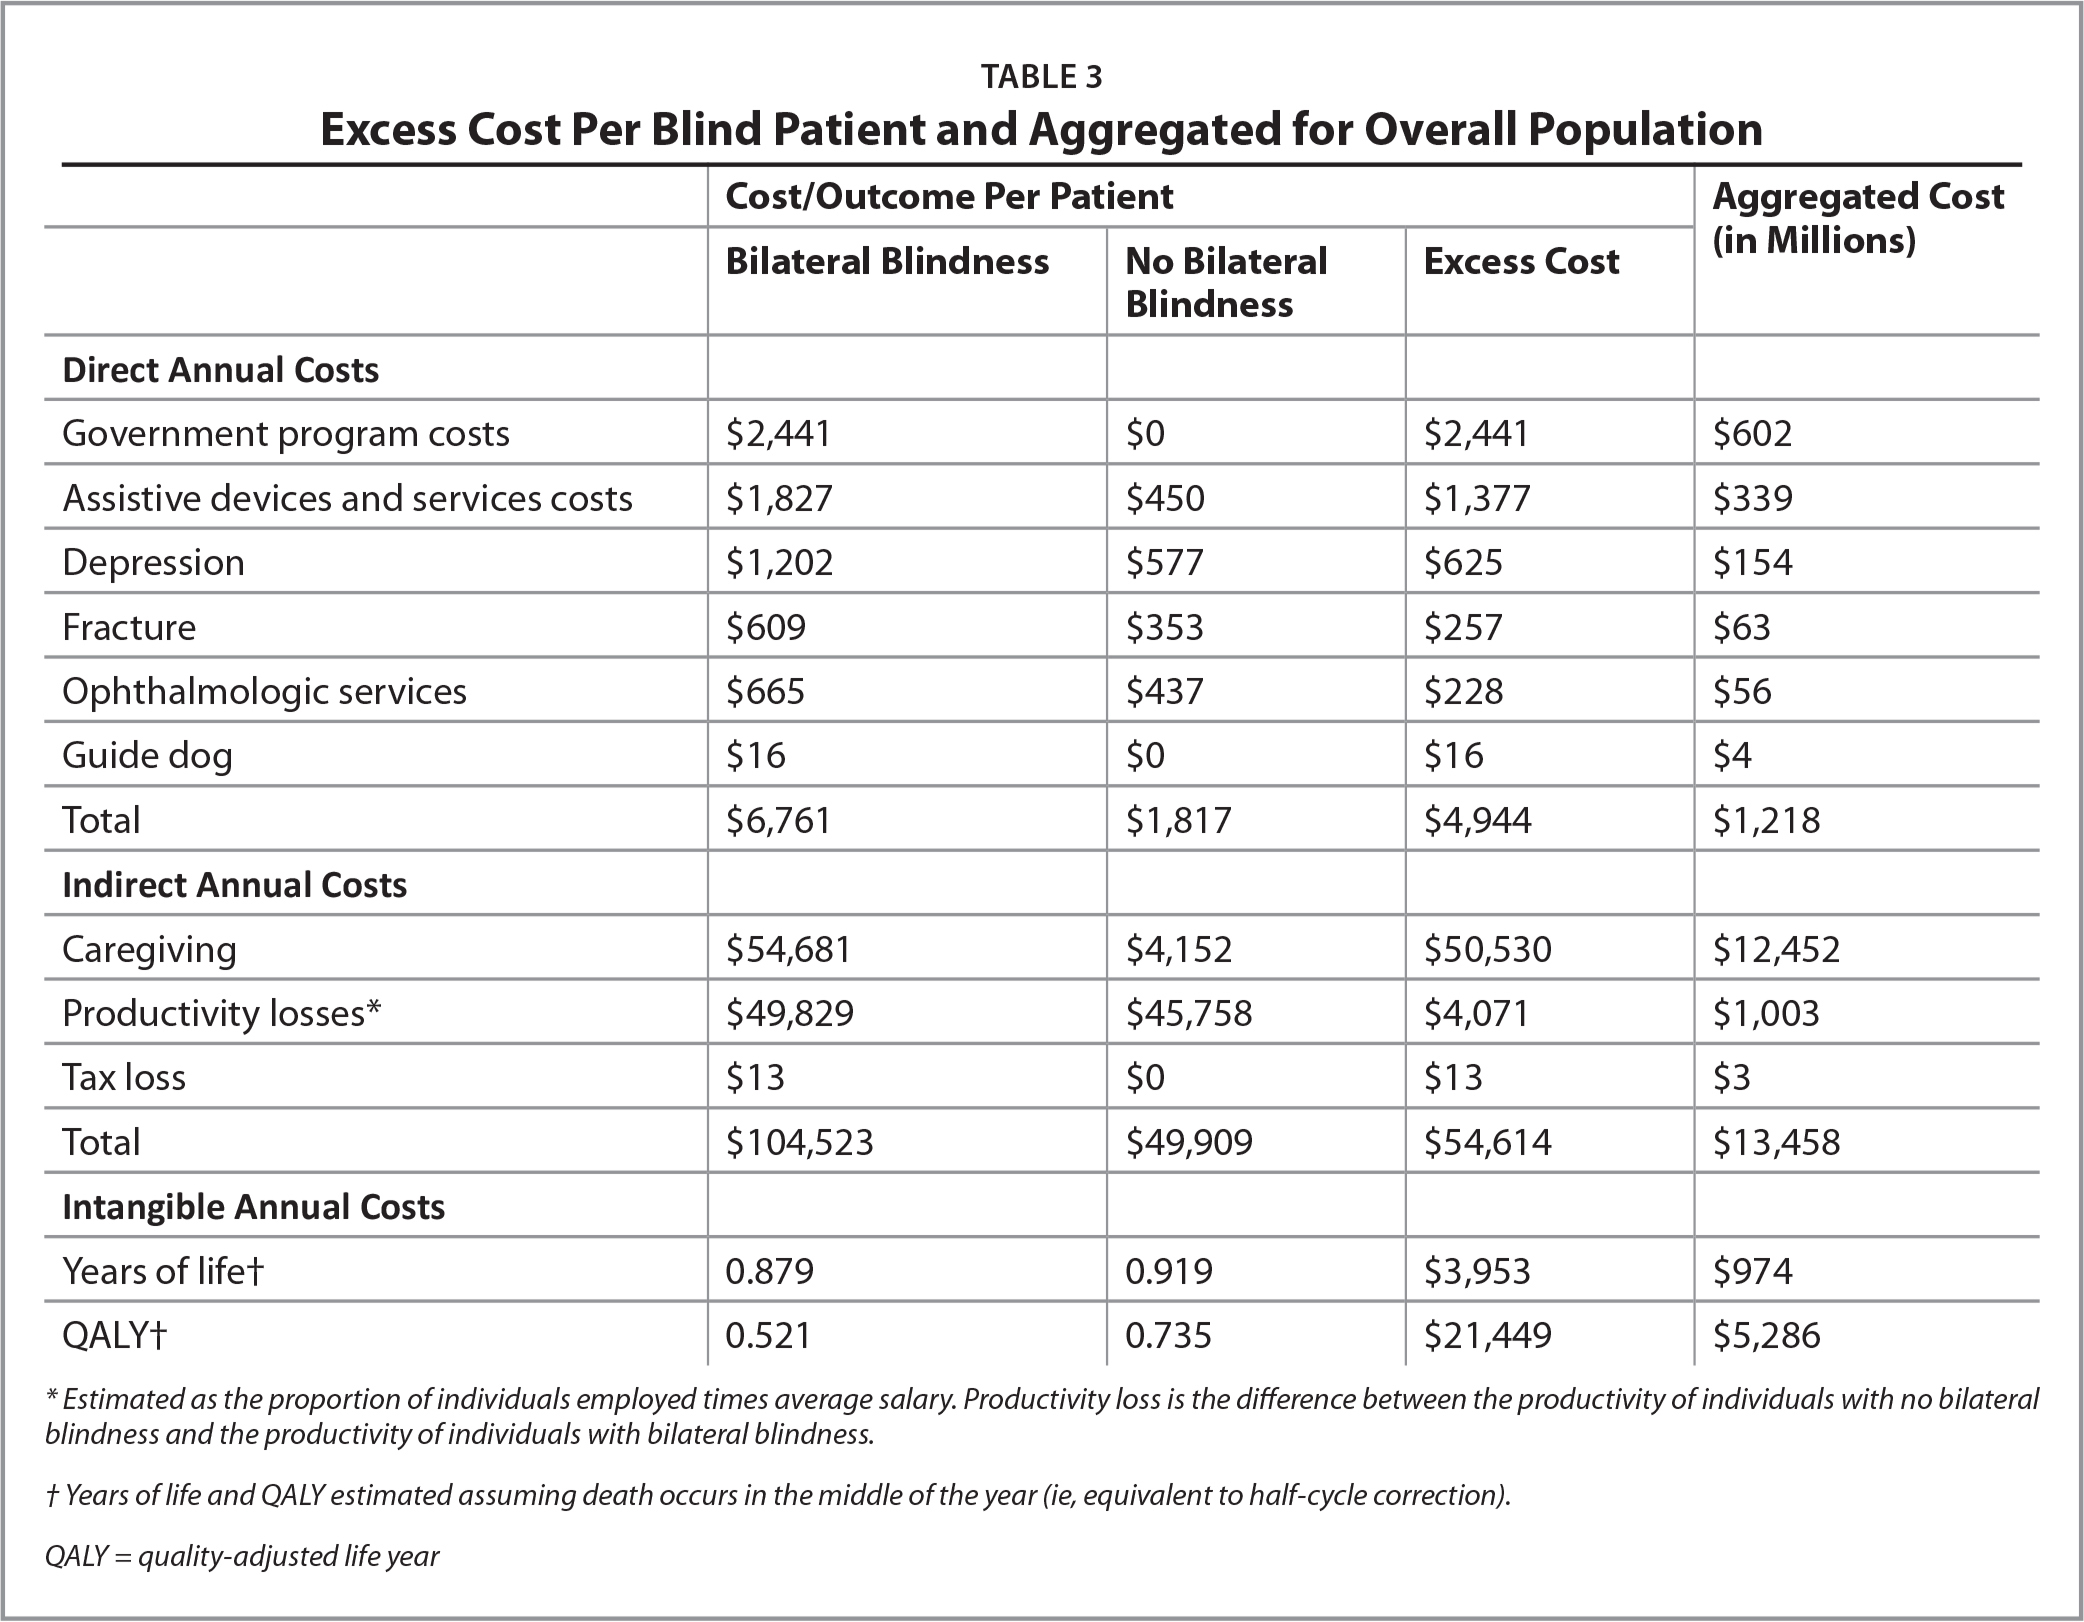 Excess Cost Per Blind Patient and Aggregated for Overall Population